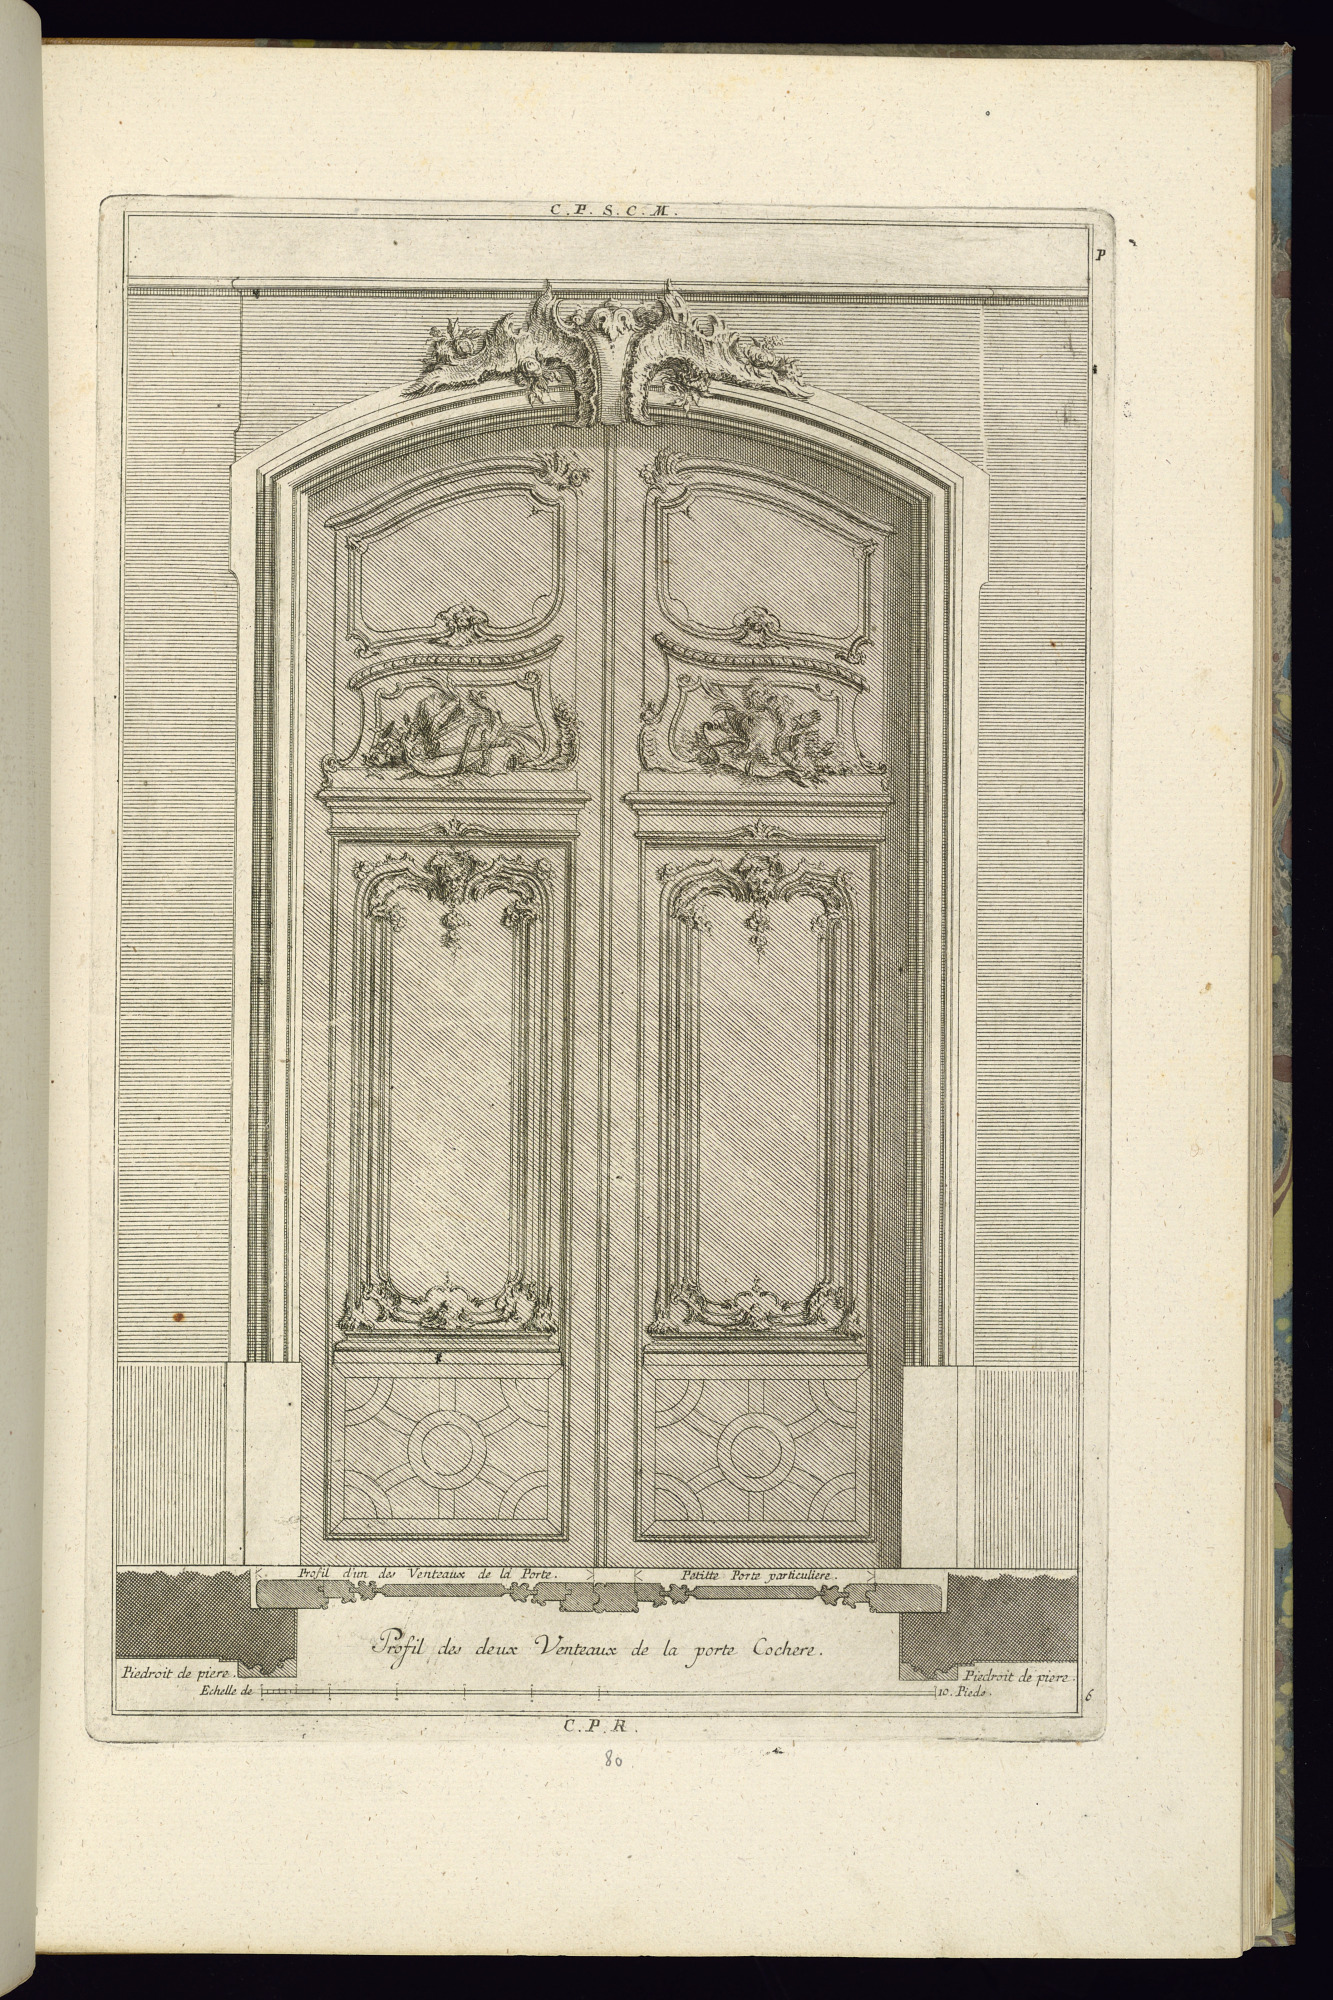 Elevation and Plan of a Portal